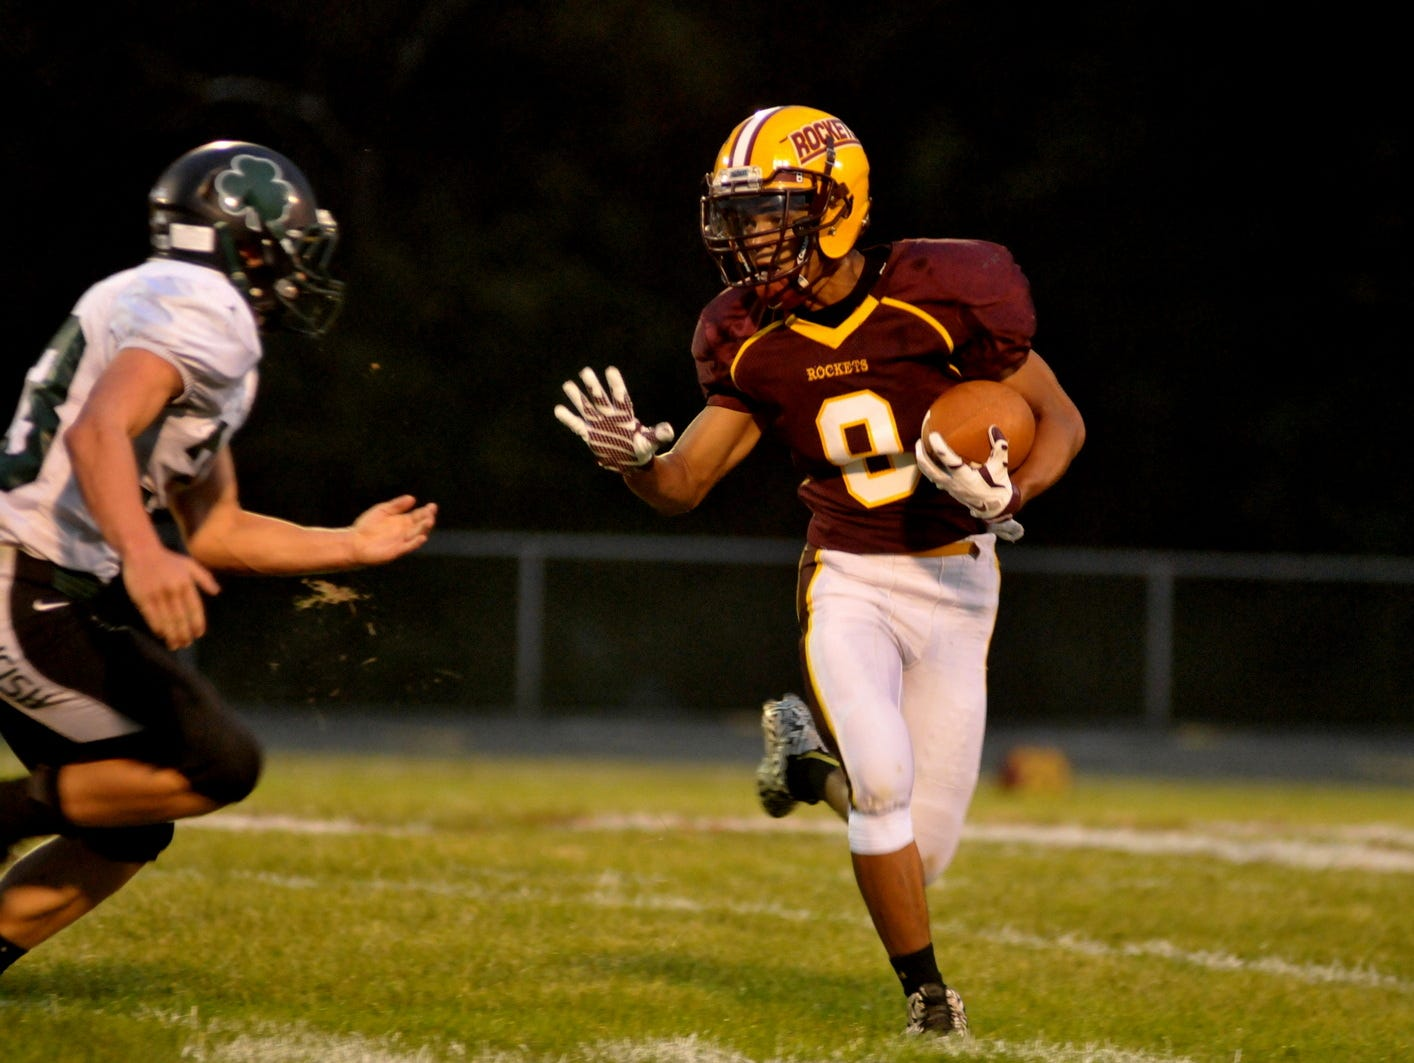 Berne Union's Bishop Reese tries to evade Fisher Catholic's Allen McCall during Friday night's game in Sugar Grove. The Irish defeated the Rockets 10-7.